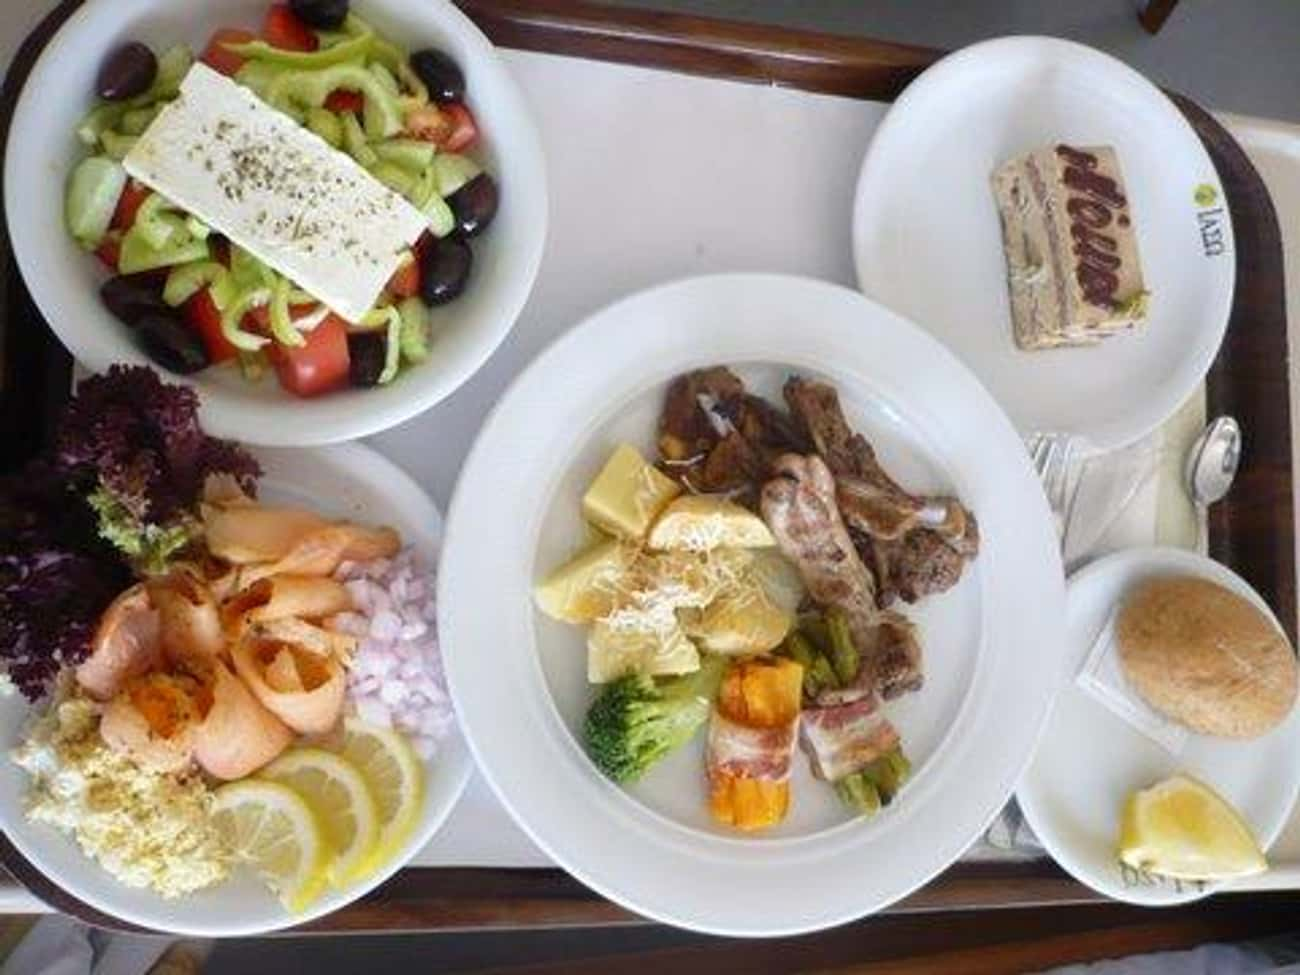 Athens, Greece is listed (or ranked) 1 on the list Here's What Hospital Food Looks Like Around the World